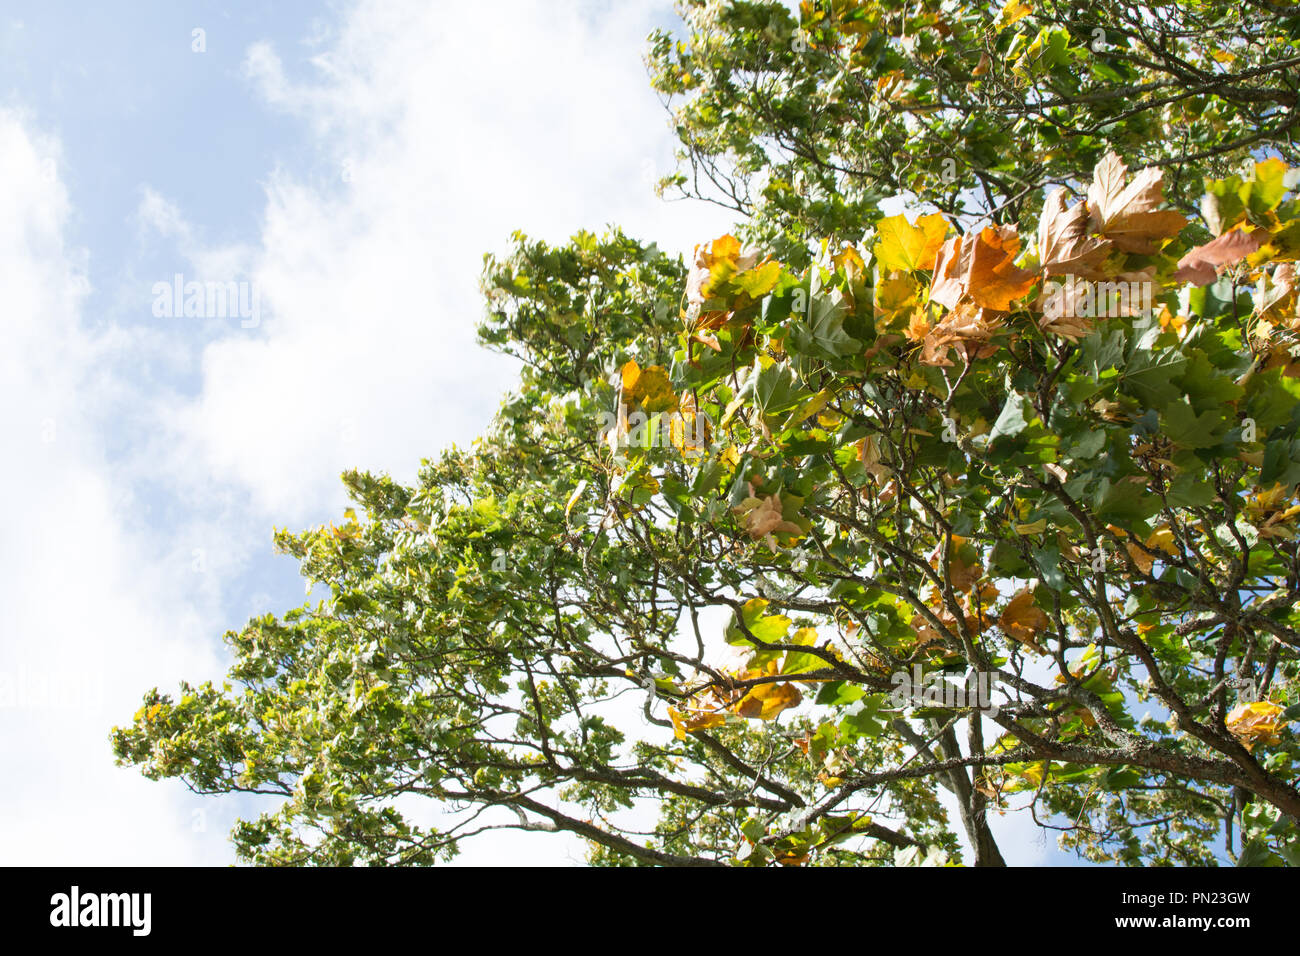 Wind Blowing Leaves In Trees On Sunny Autumn Day Stock Photo Alamy